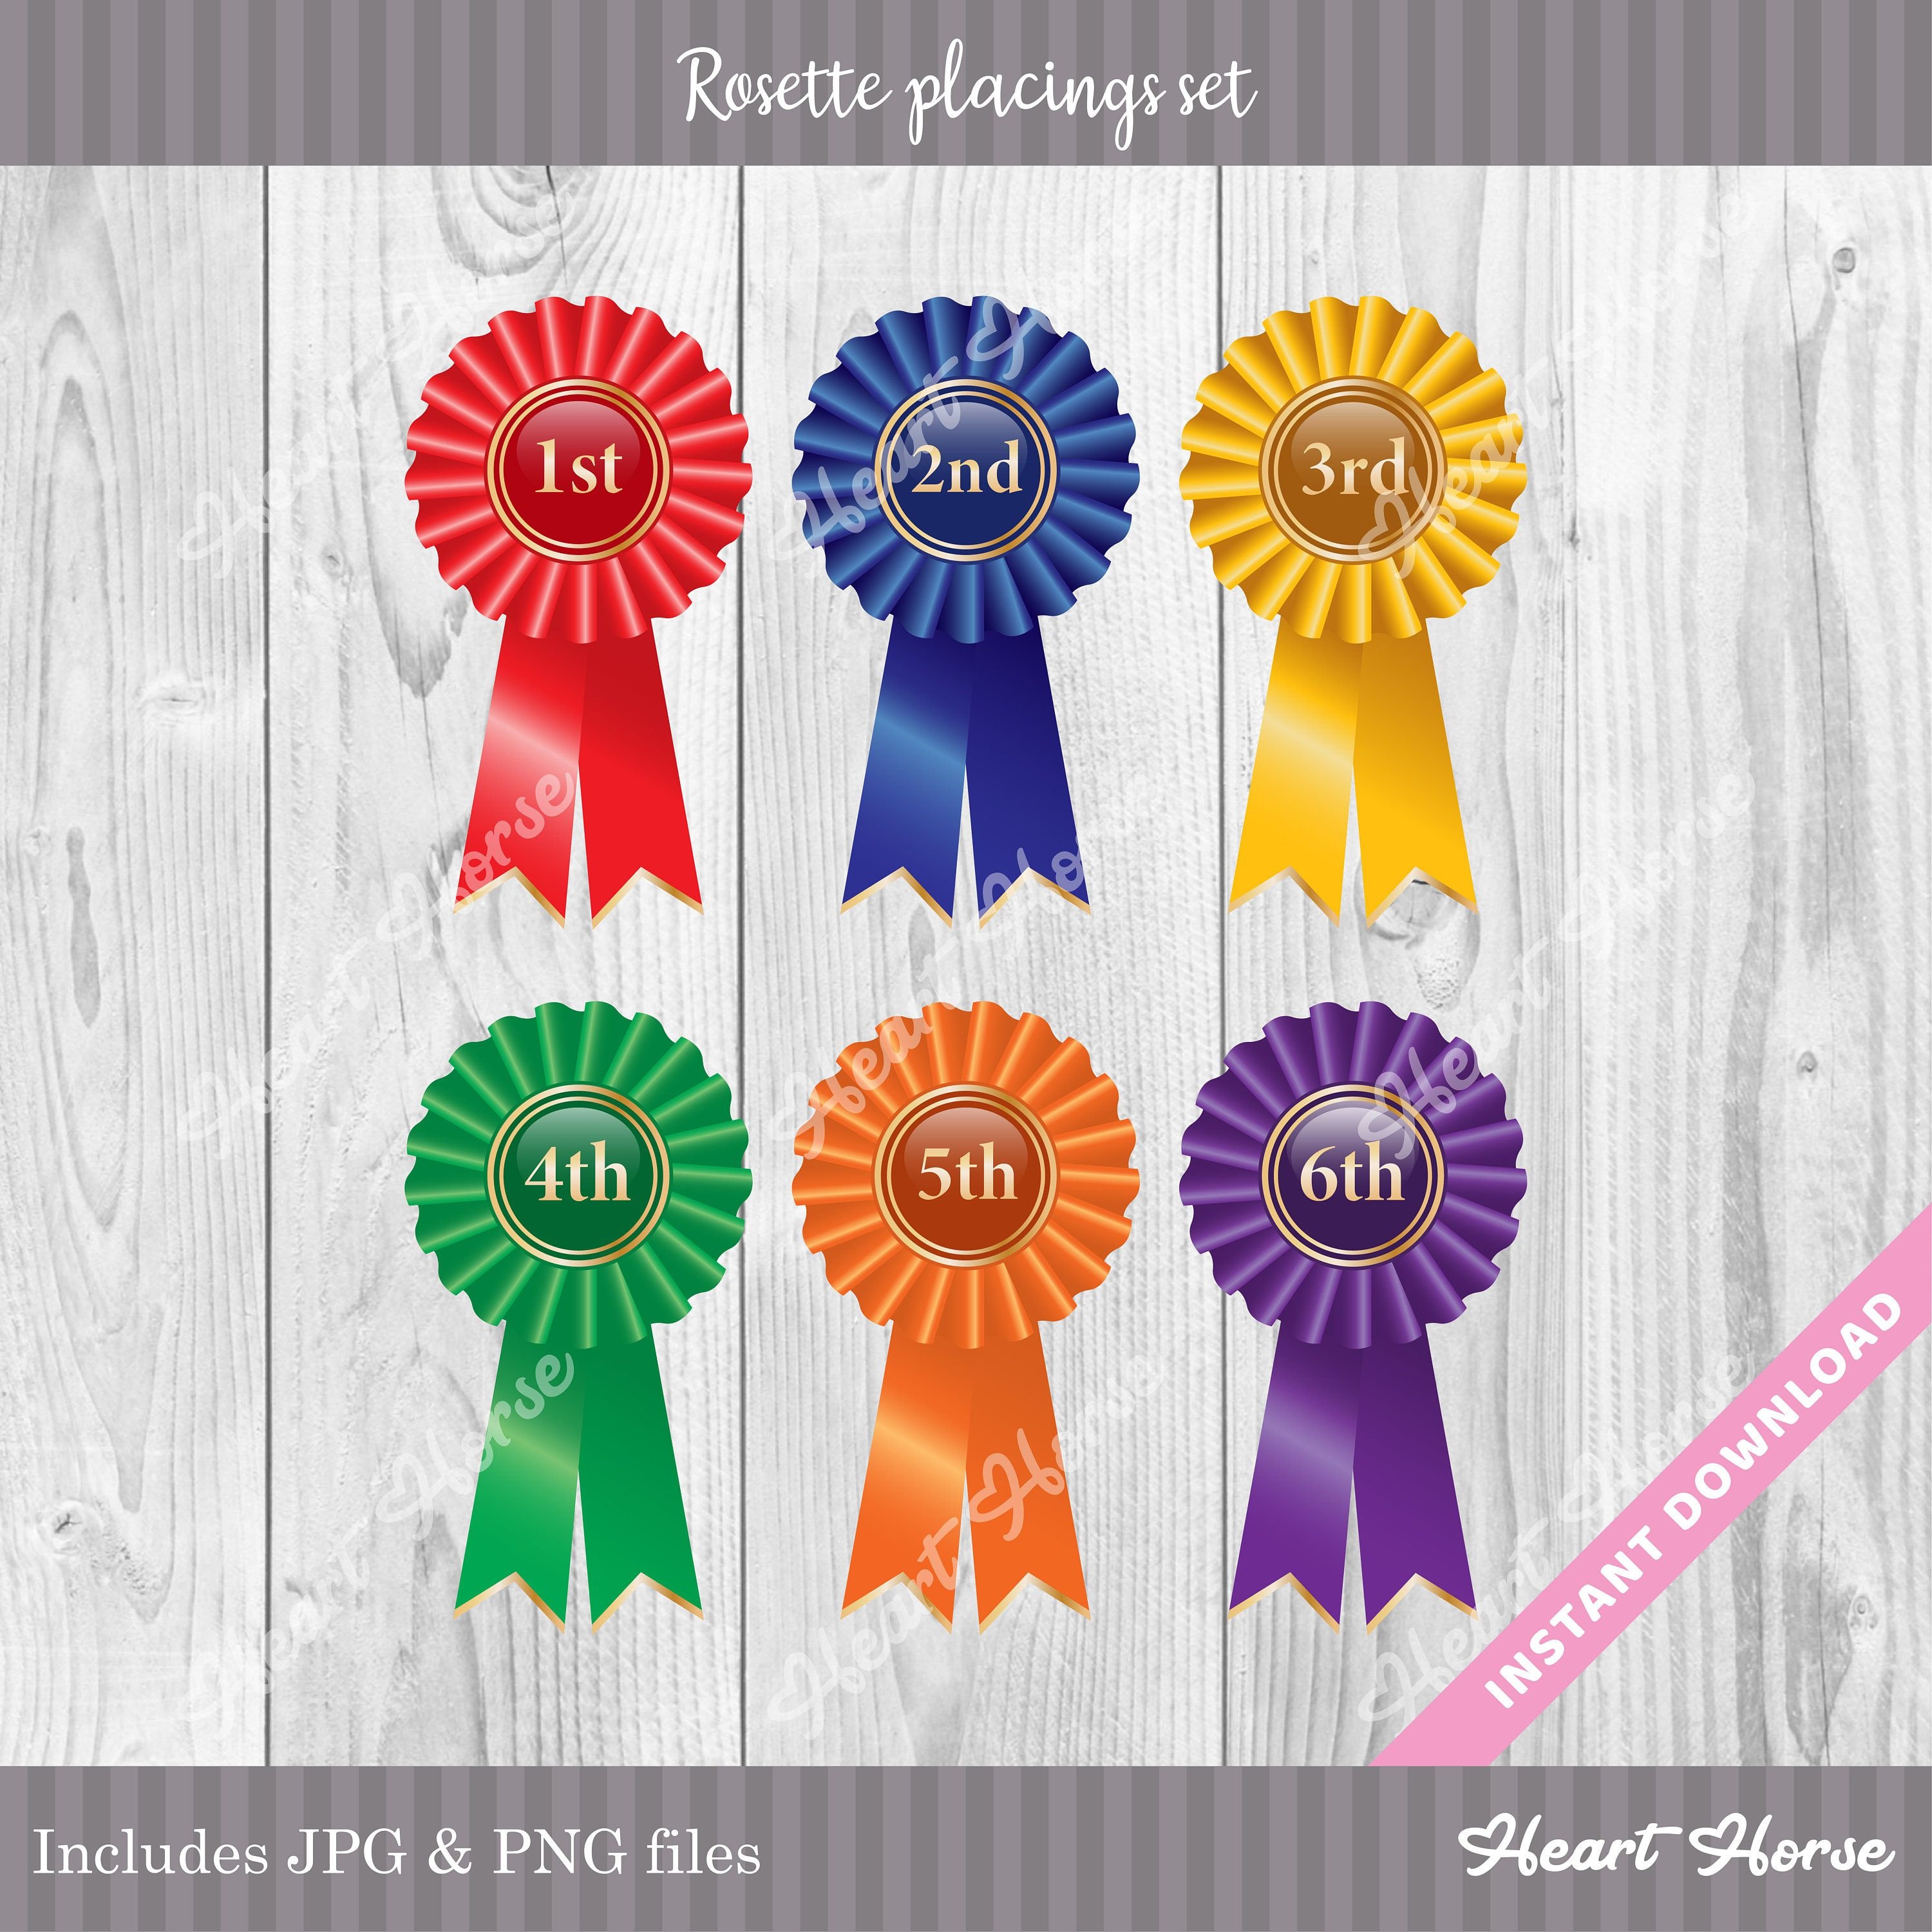 Printed with your Text 100 Personalised Rosettes Logo Cheap Printed Rosettes